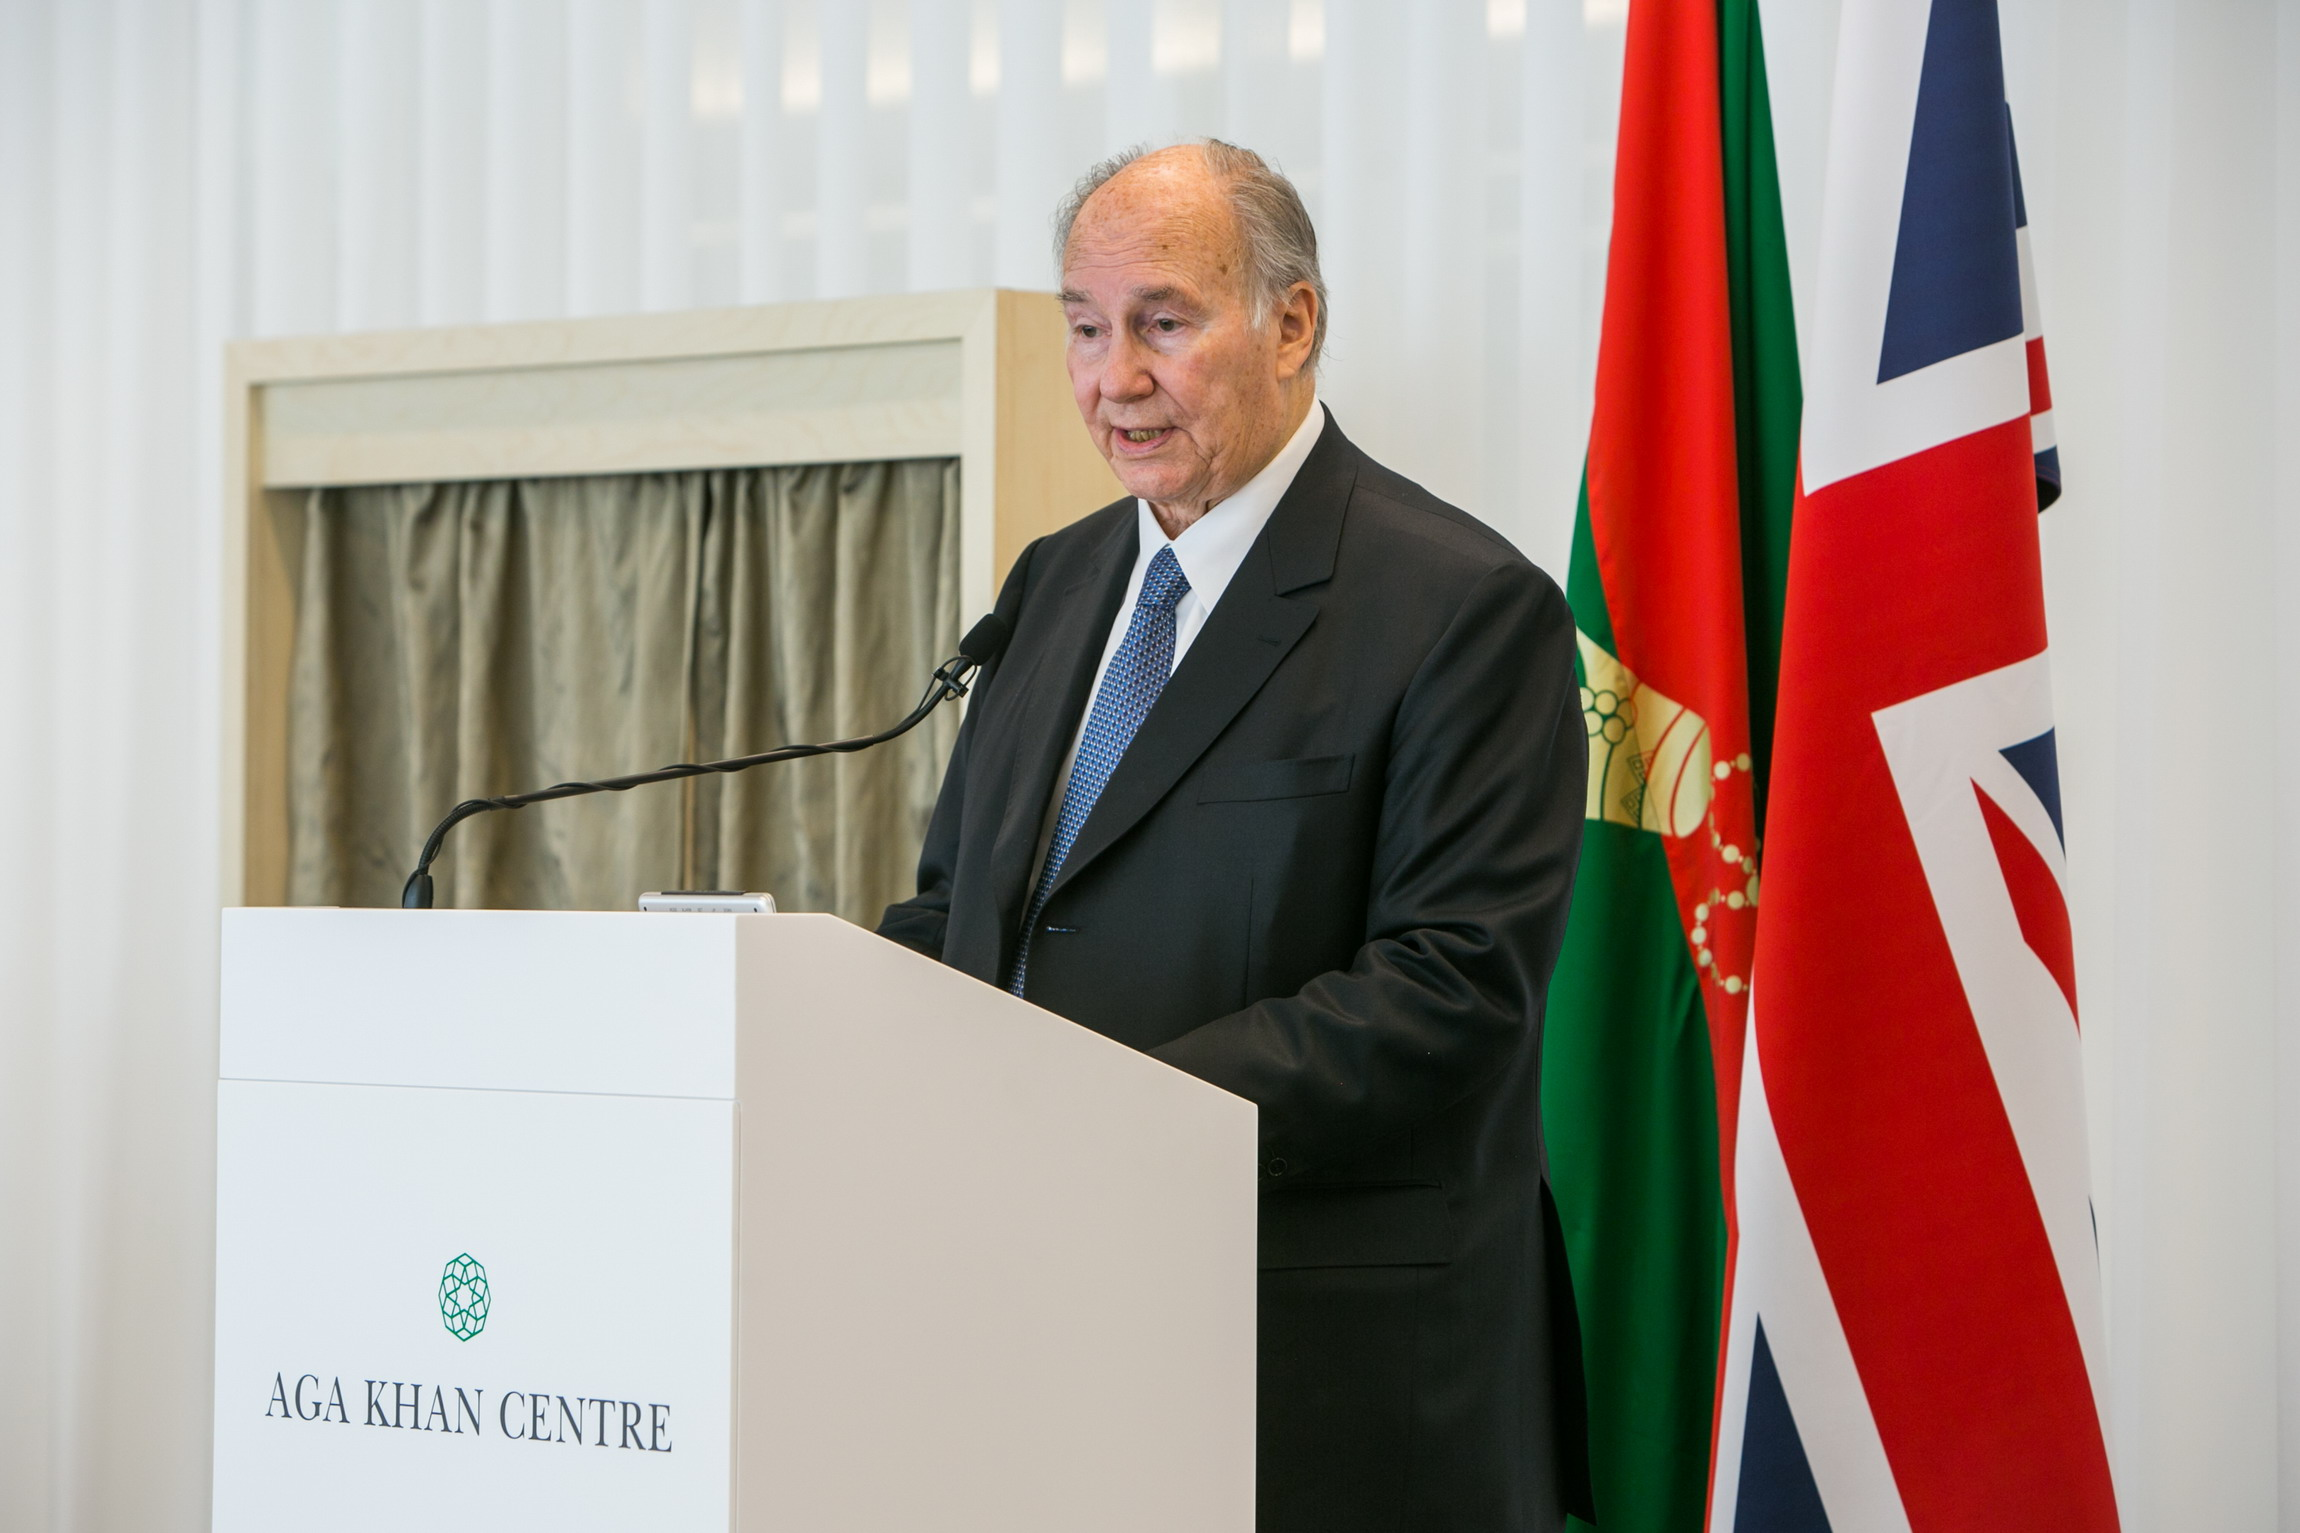 His Opening of the Aga Khan